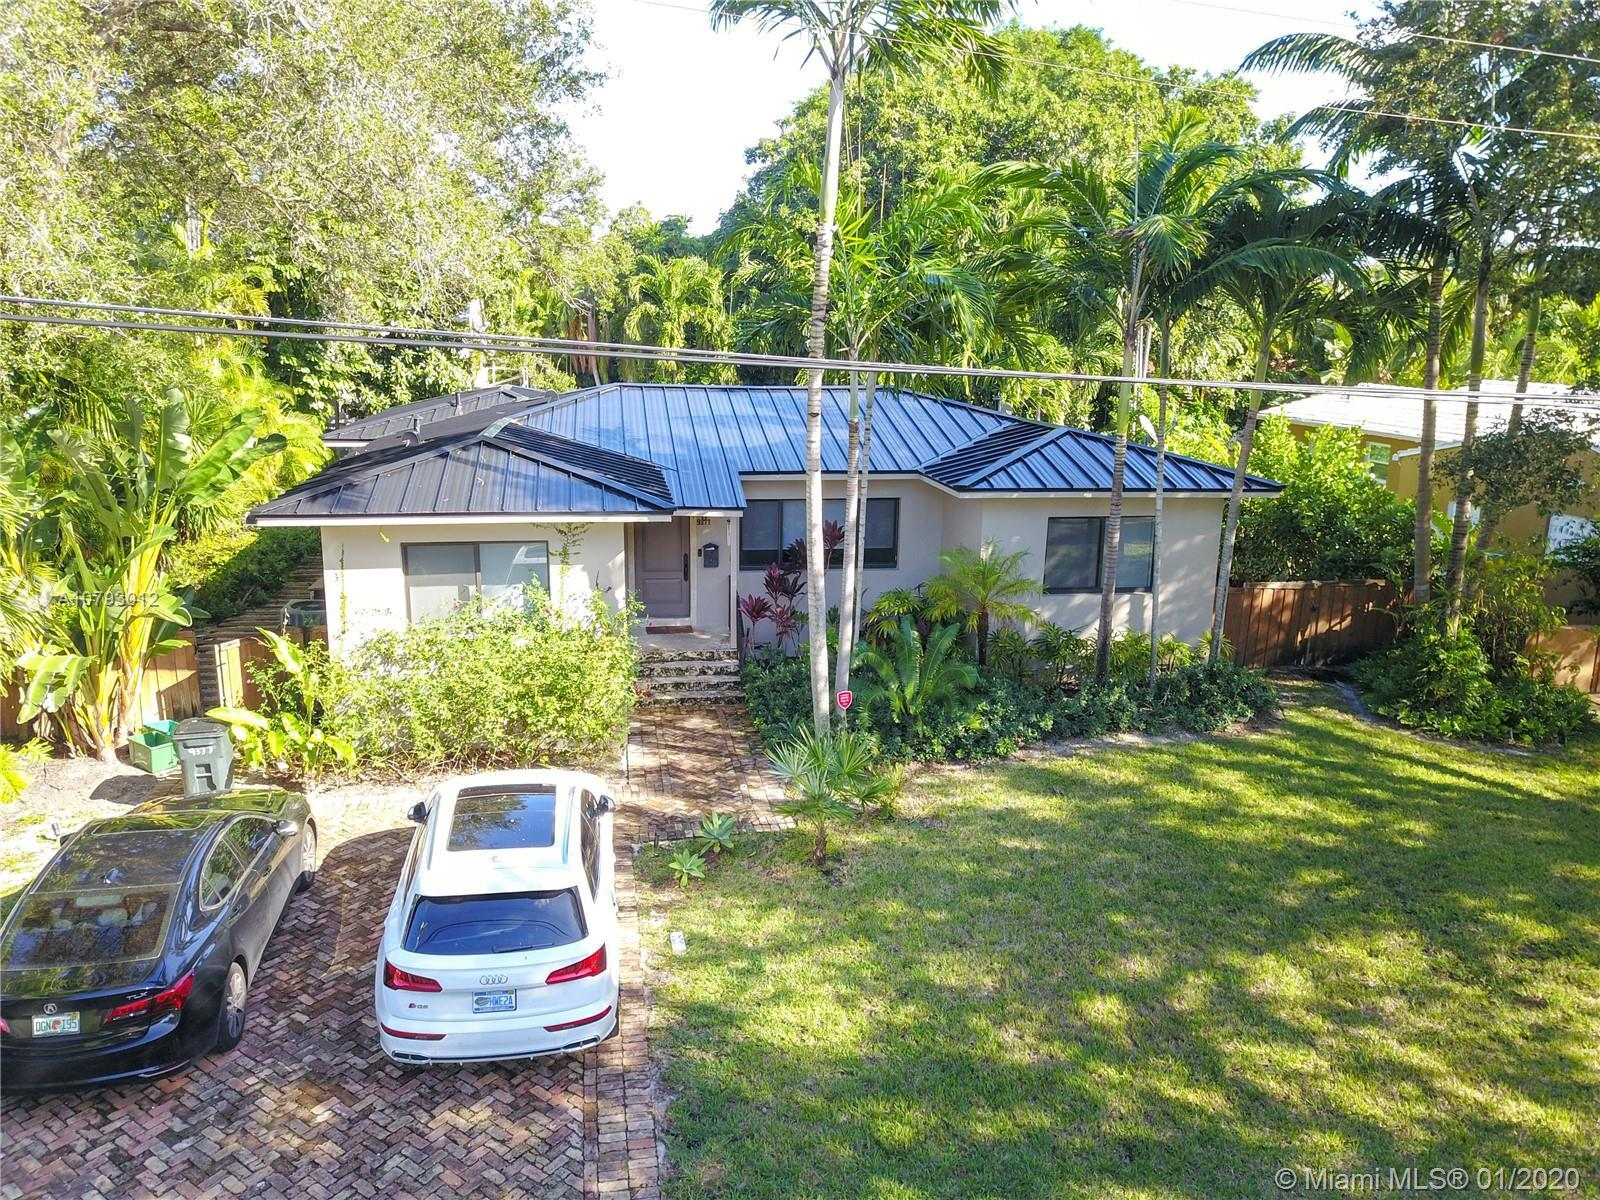 Completely remodeled in 2015, this spacious home in sought out Miami Shores neighborhood is east of